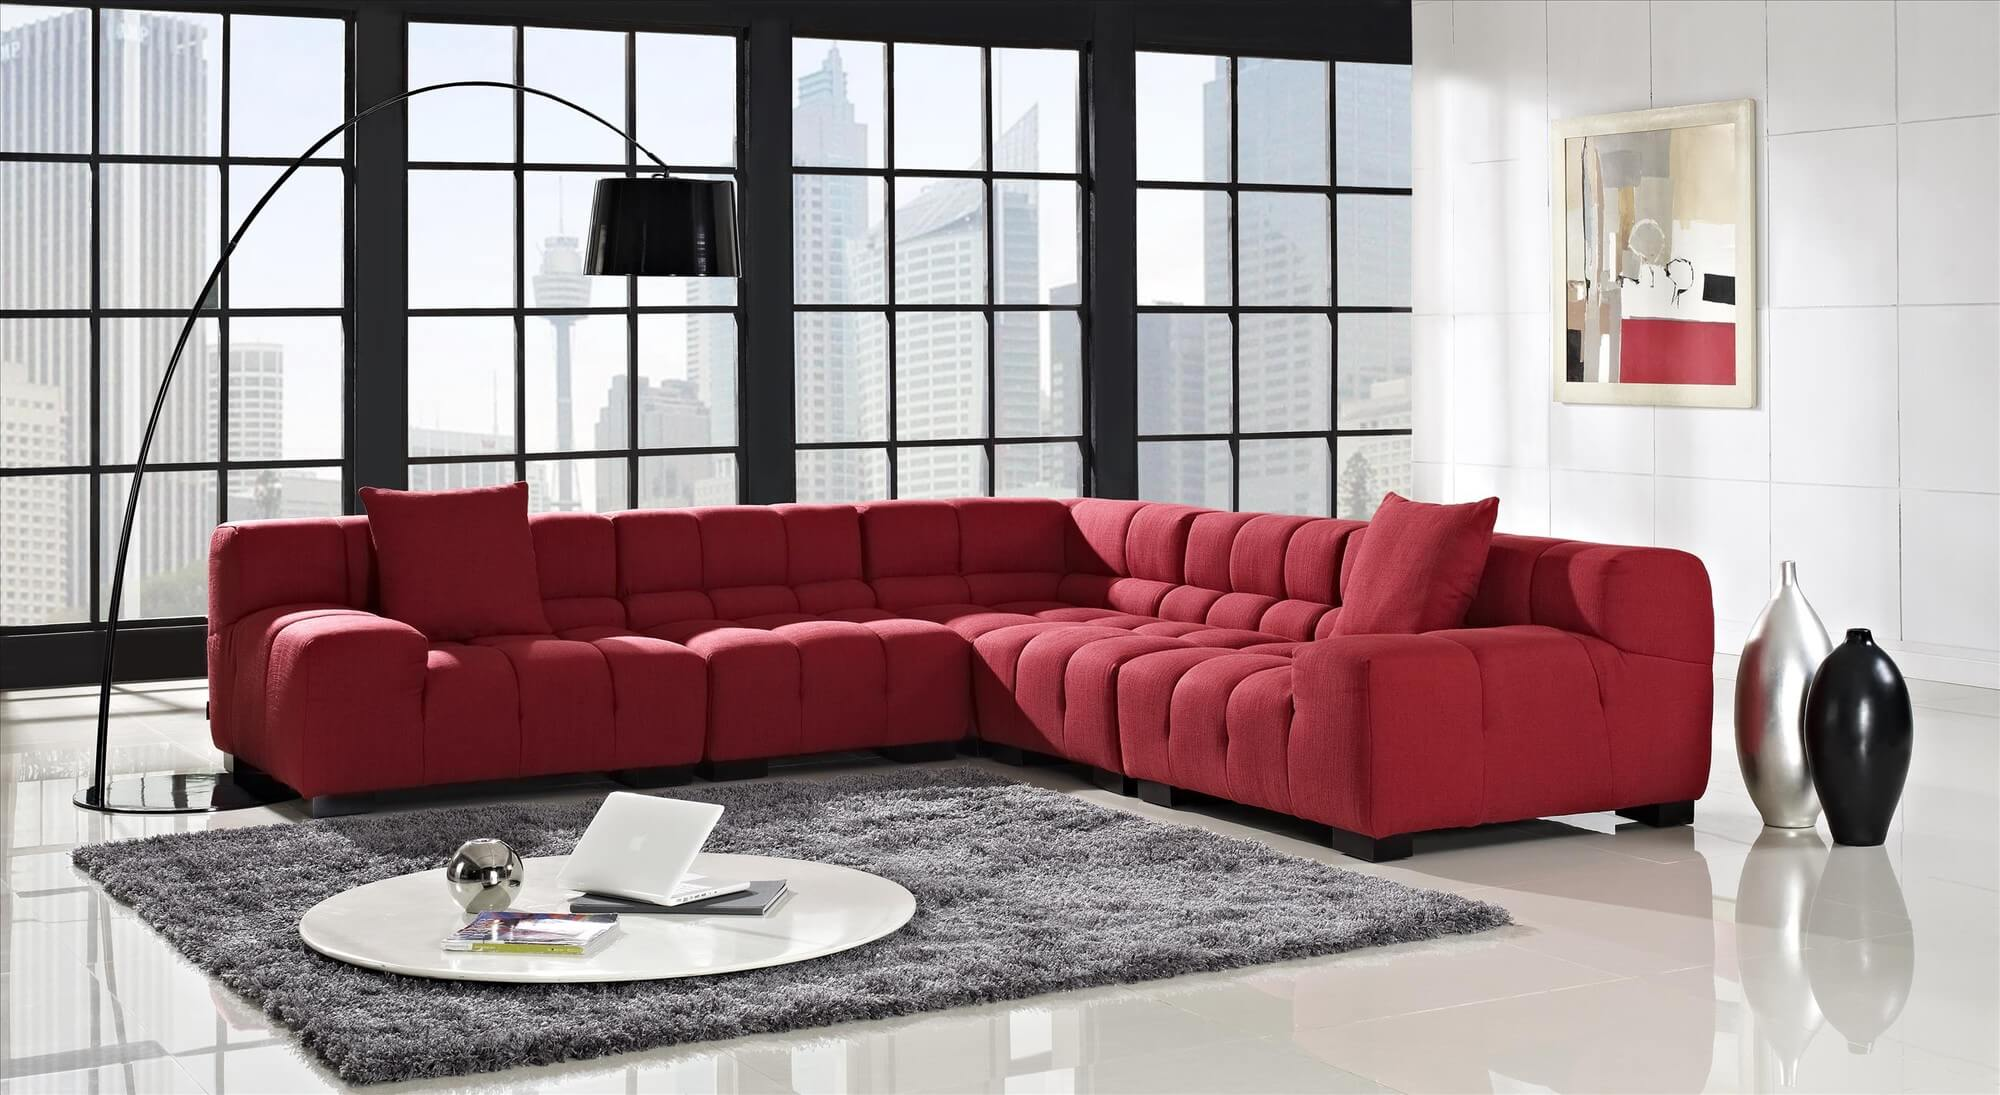 18 stylish modern red sectional sofas. Black Bedroom Furniture Sets. Home Design Ideas